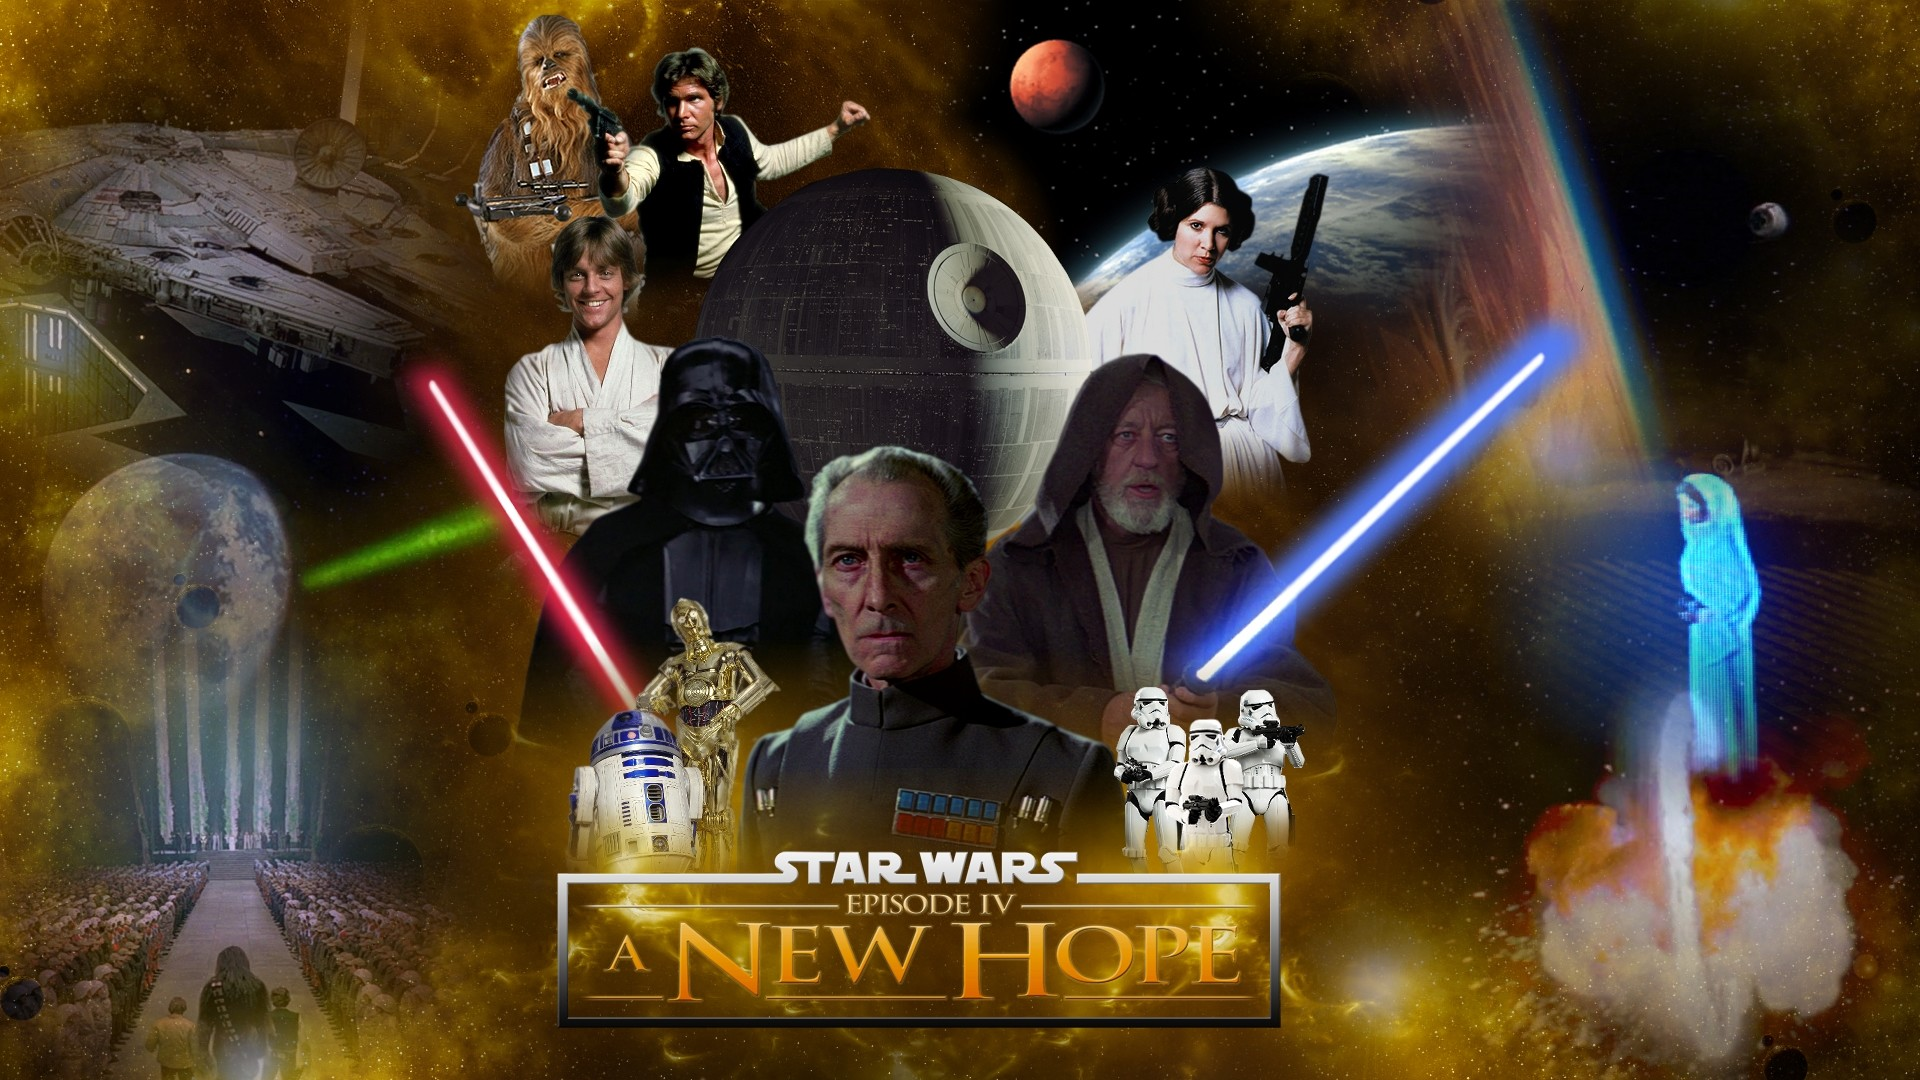 Star Wars Episode Iv A New Hope Wallpapers